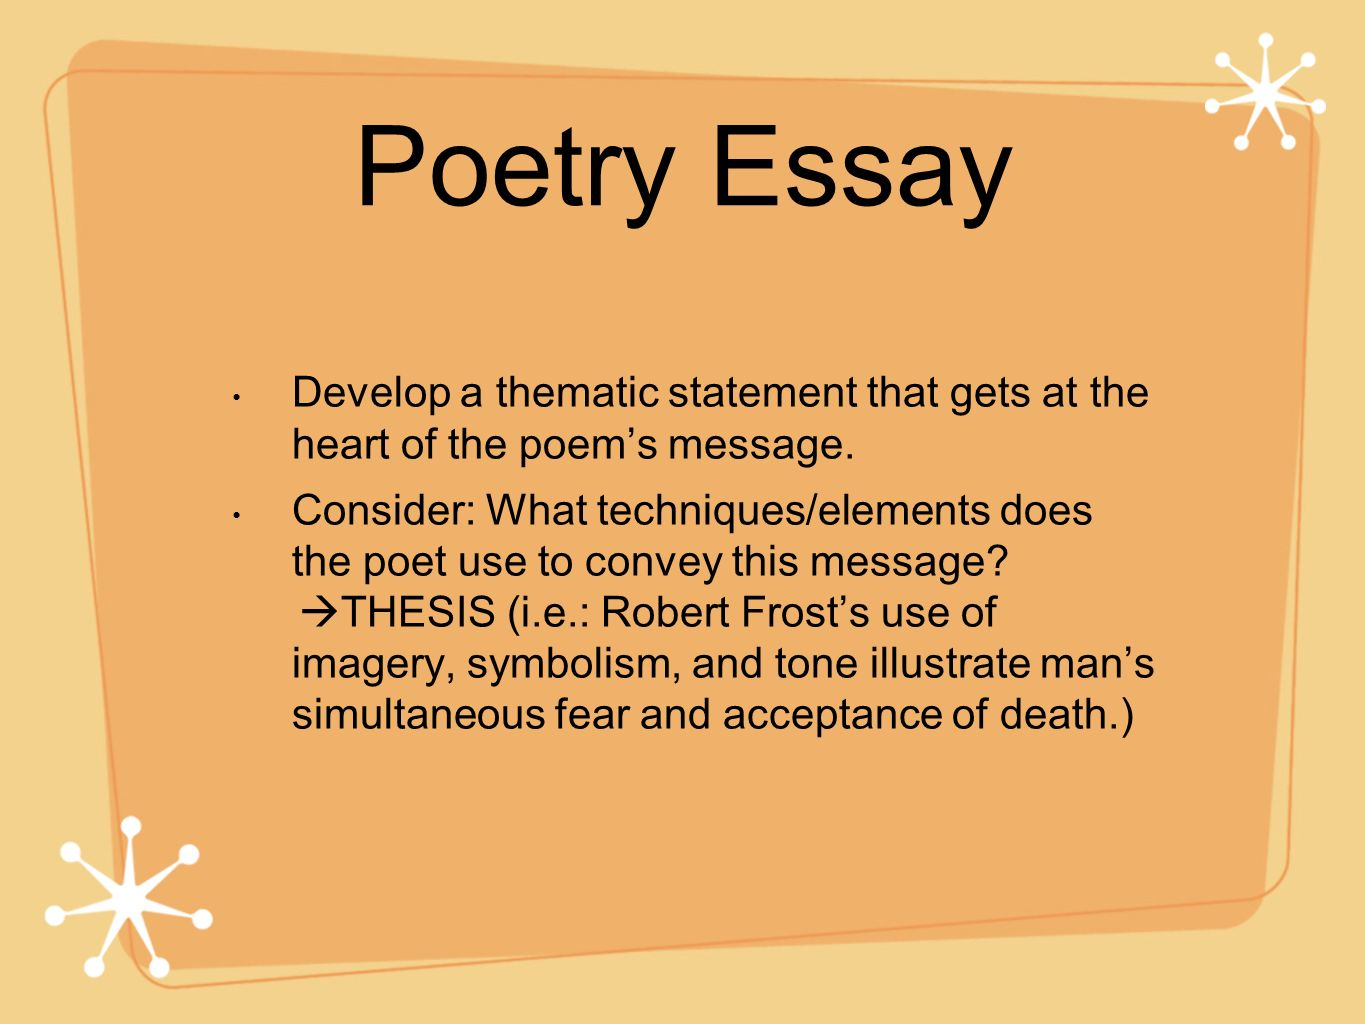 How to Create a Thesis & Outline for a Poetry Essay